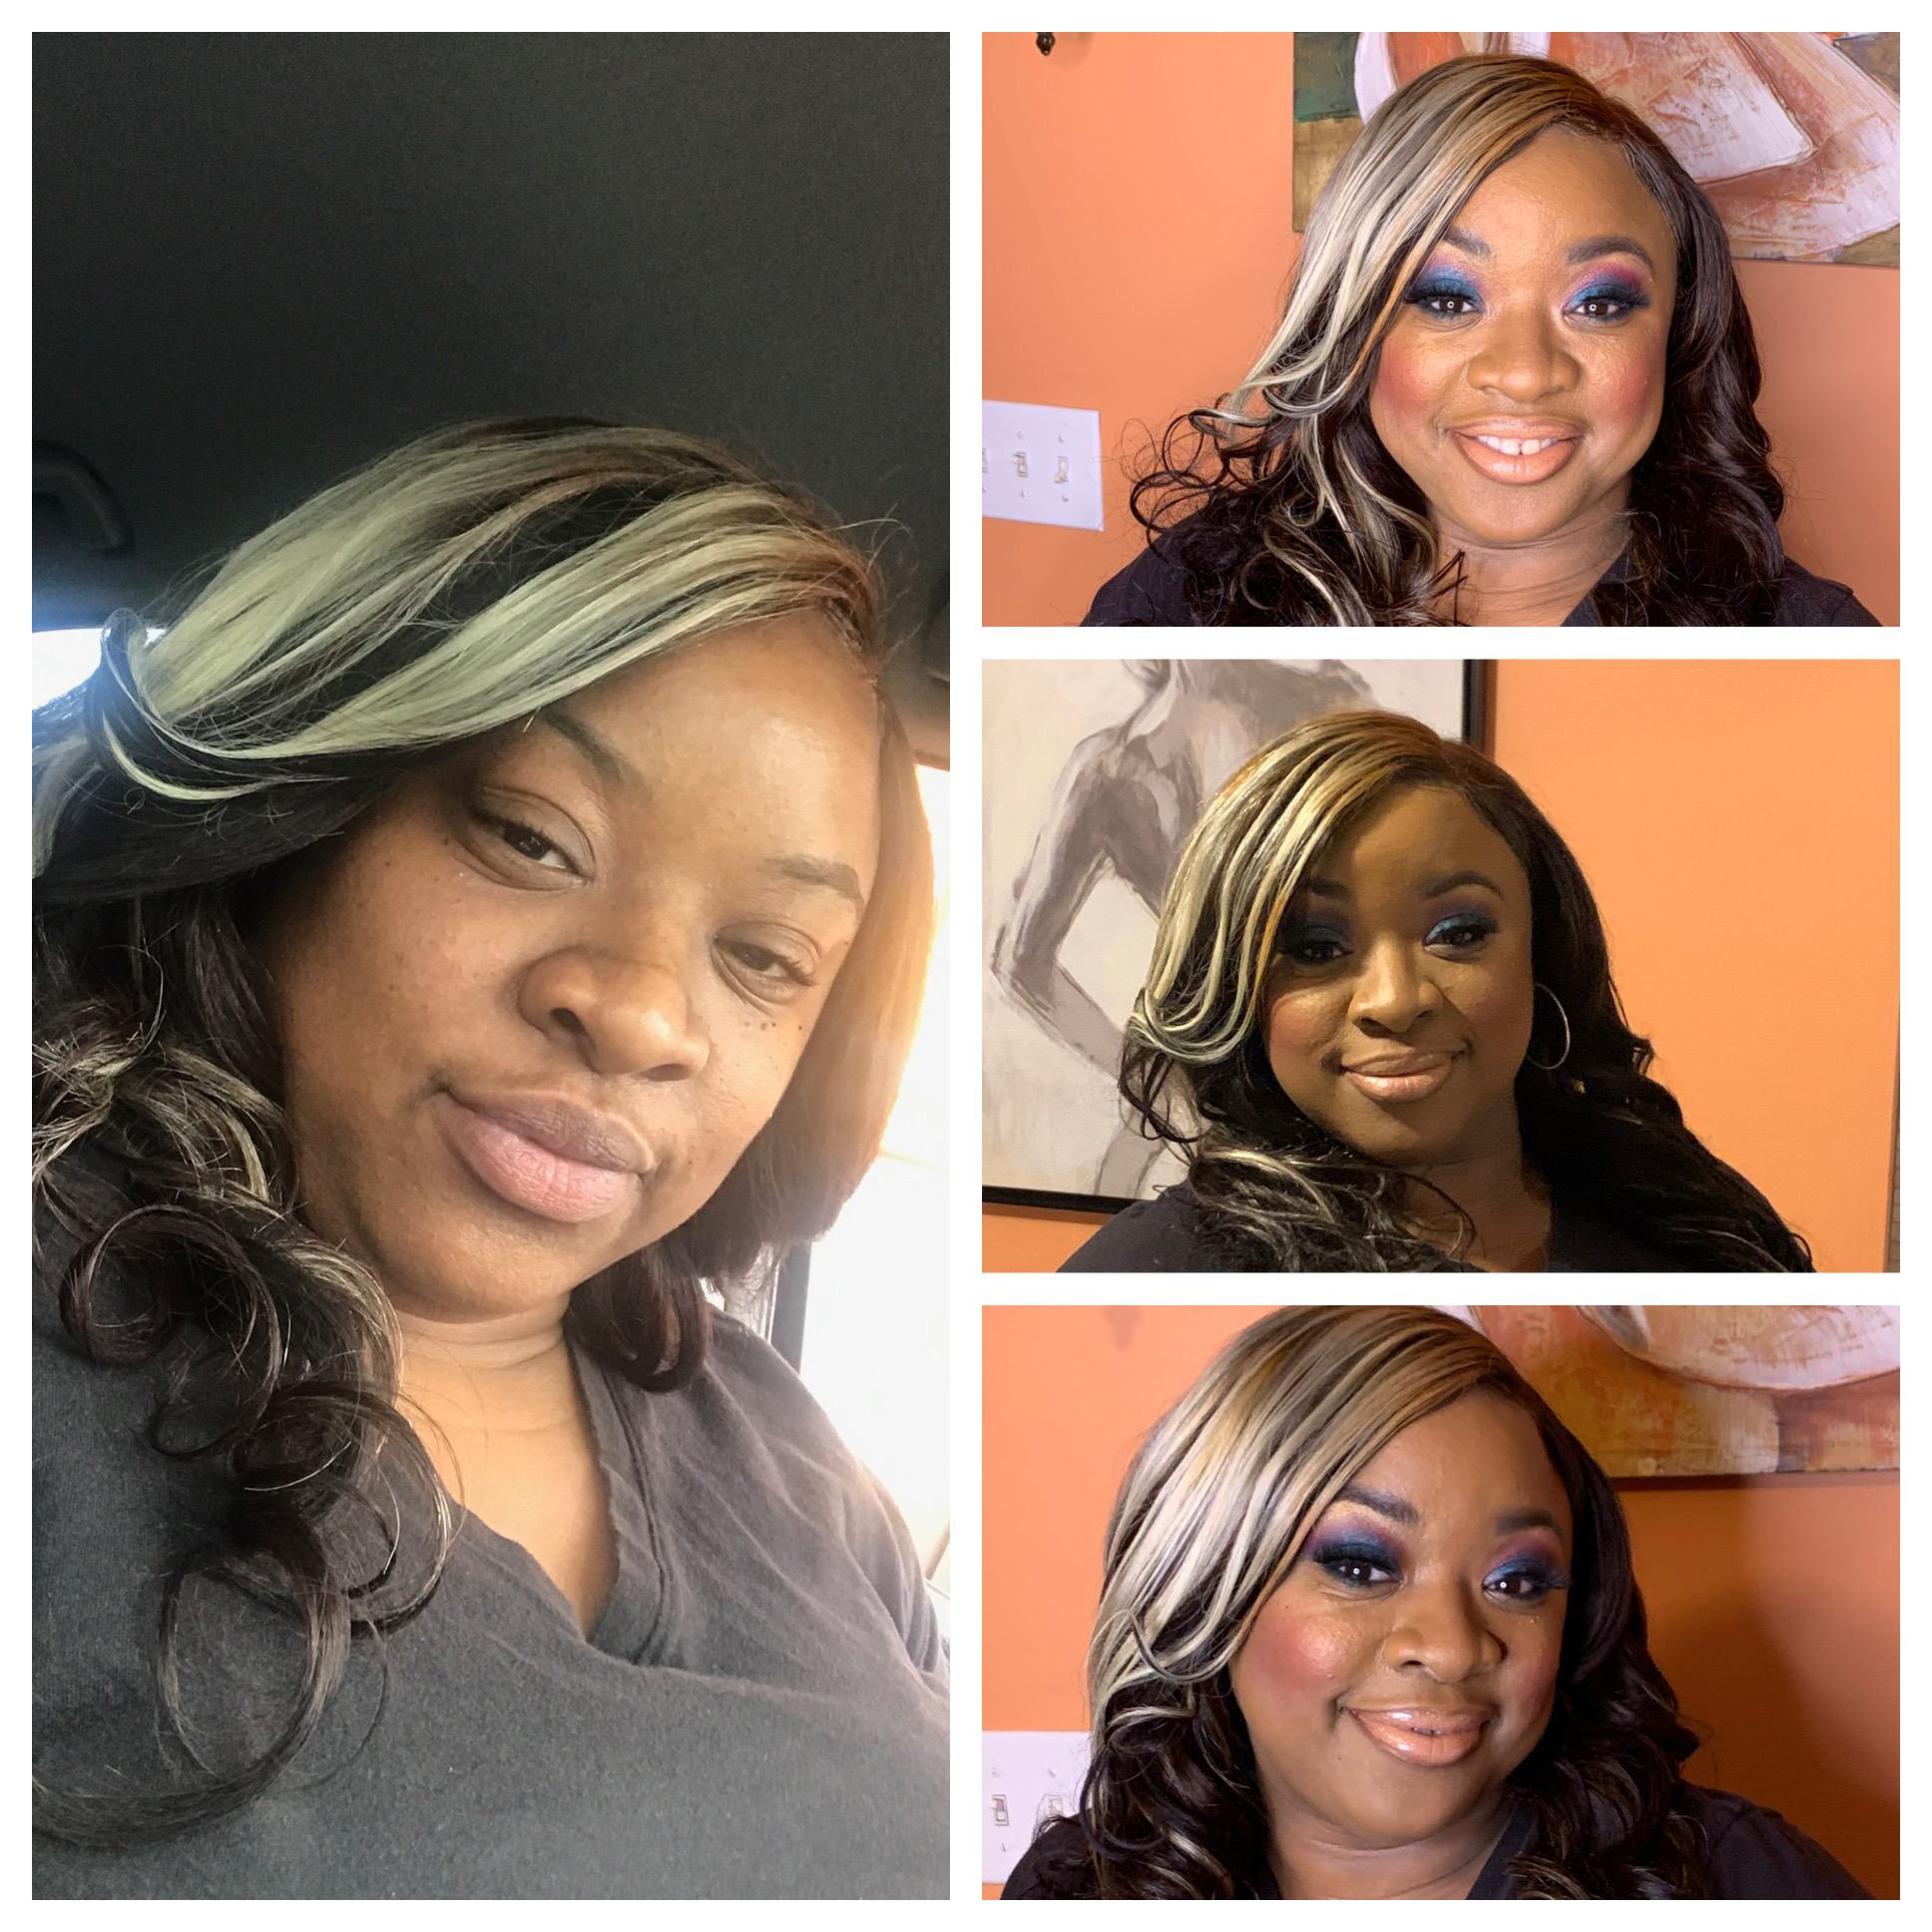 Previous Make-up Client